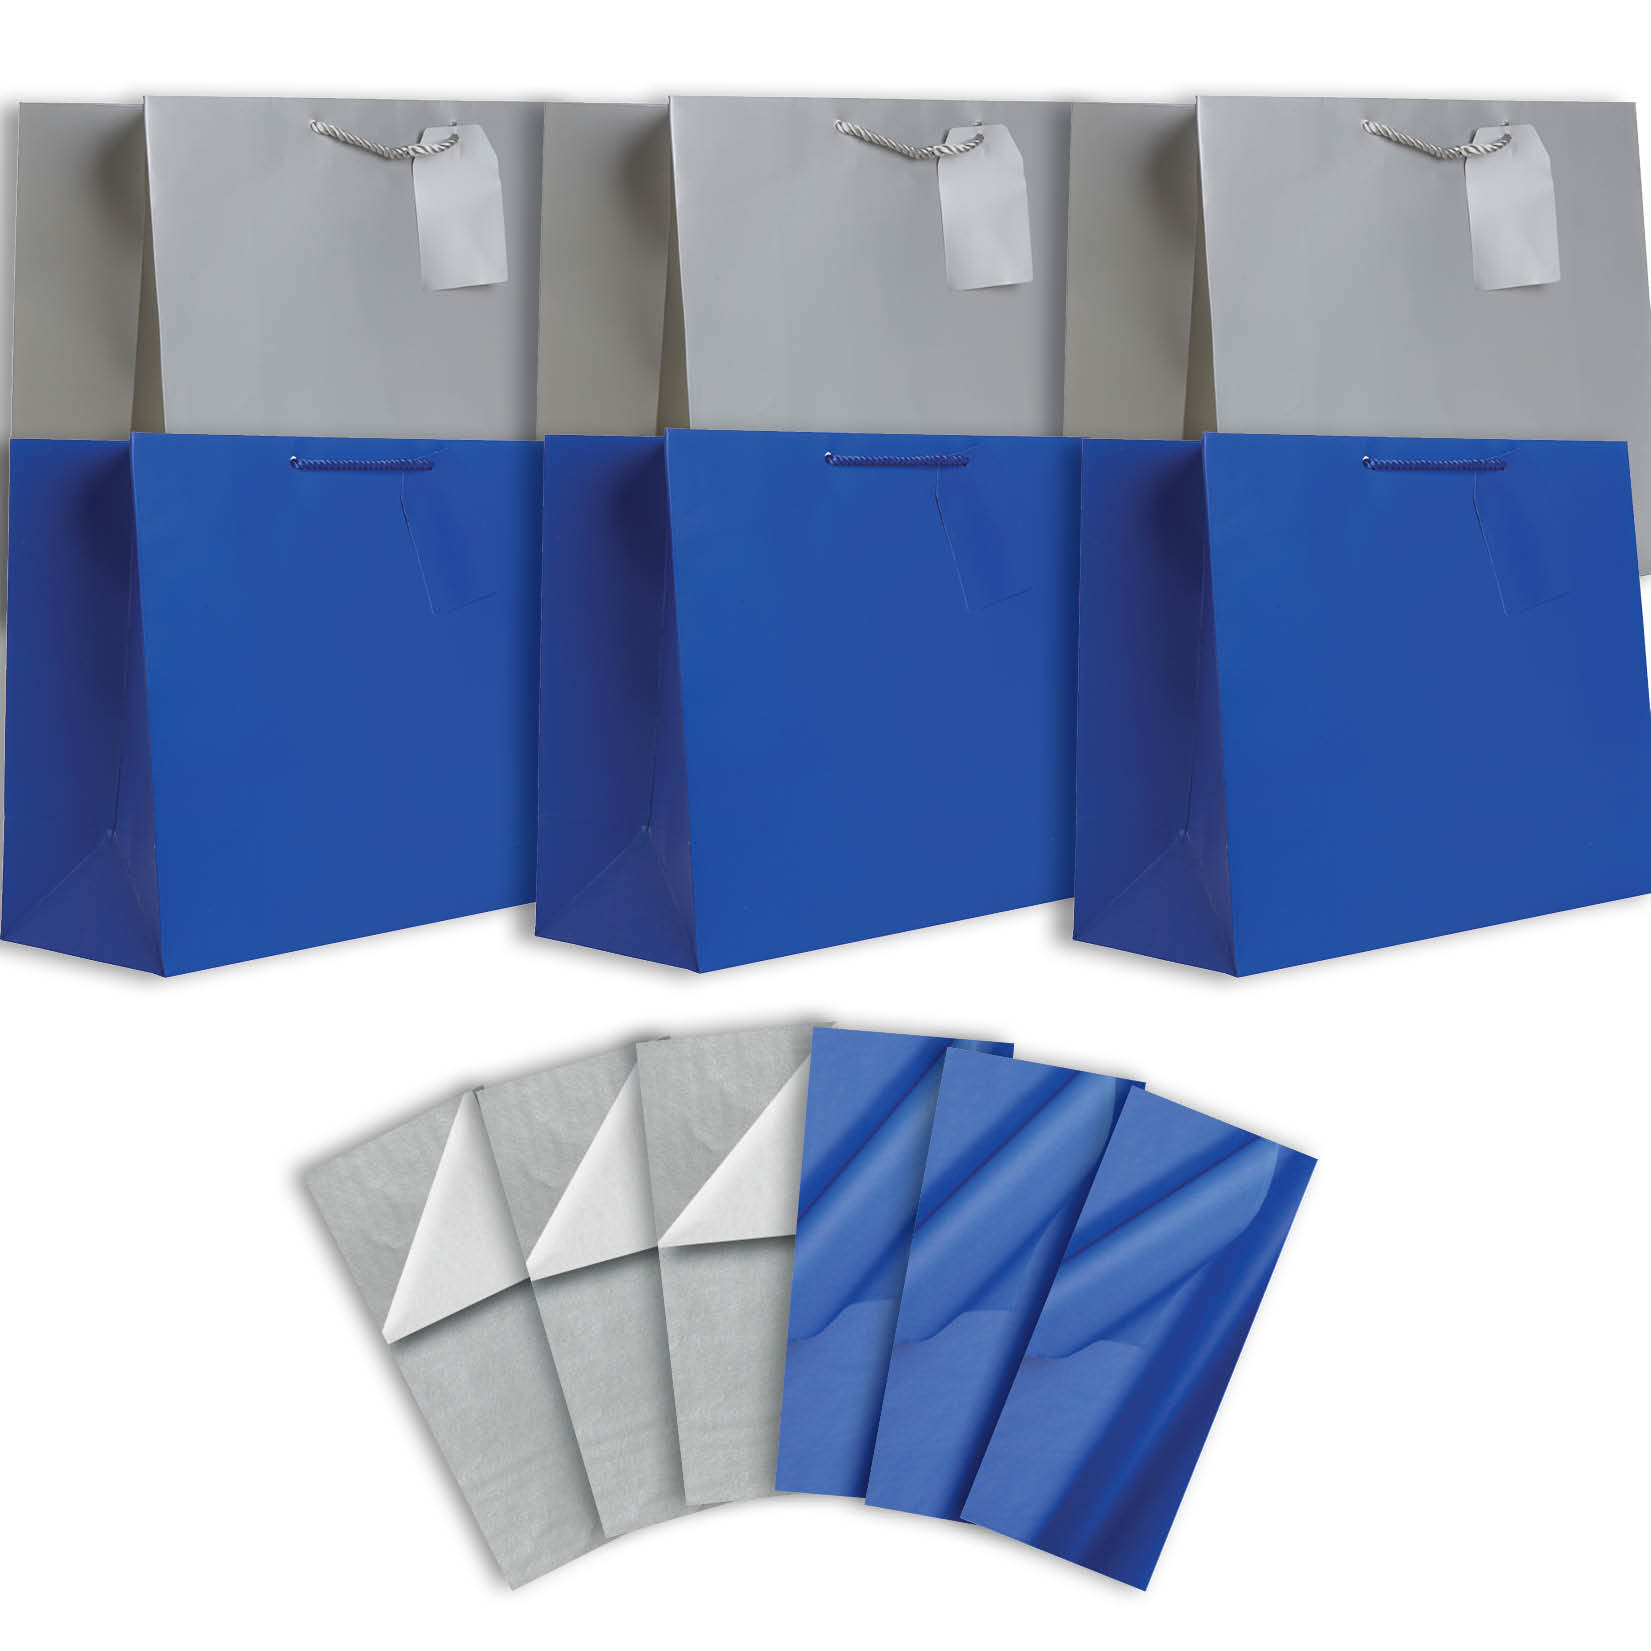 Jillson & Roberts Solid Color Matte Jumbo Gift Bag & Tissue Assortment, Hanukkah (6 Bags)